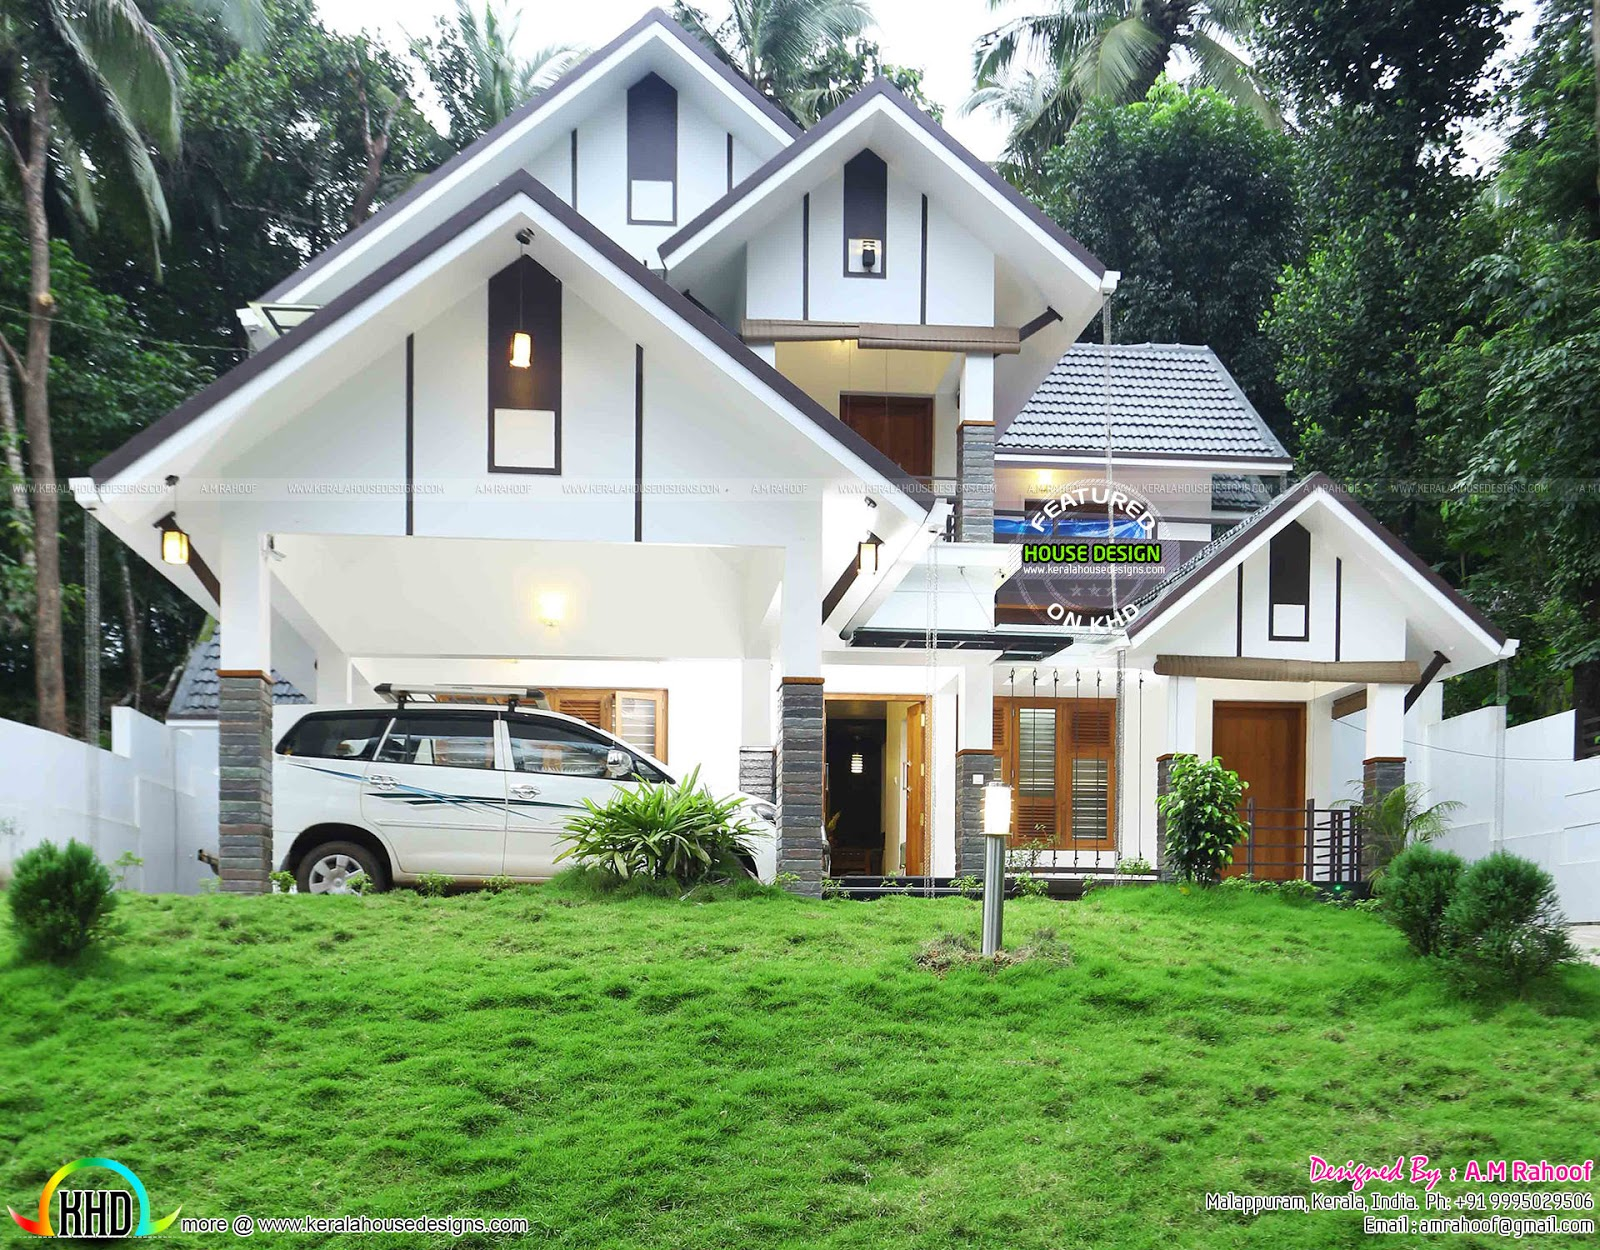 Finished house project in kerala home design simple for Simple houses in kerala